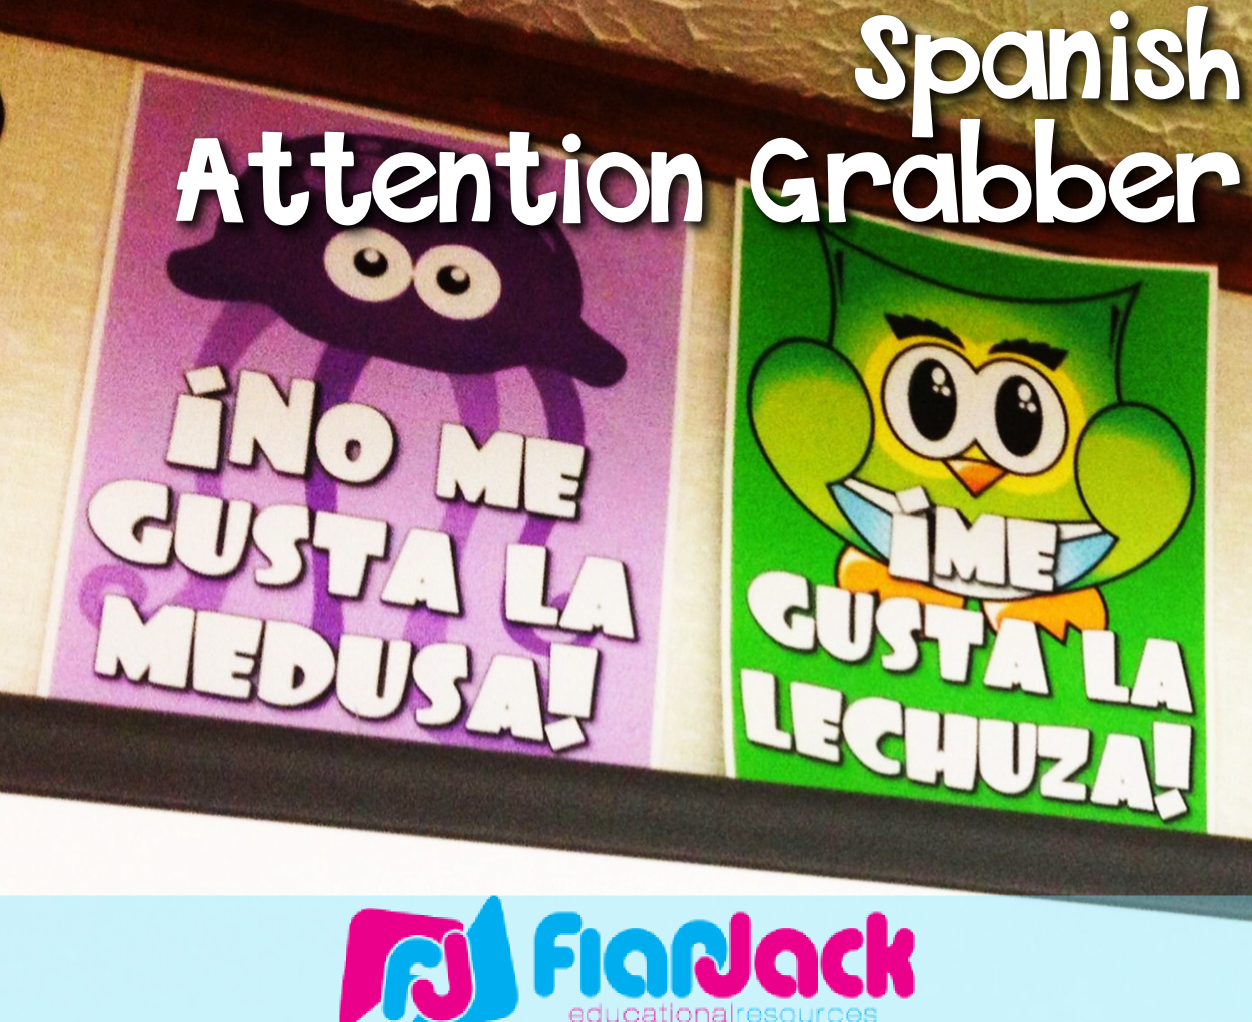 flapjack educational resources another spanish attention grabber